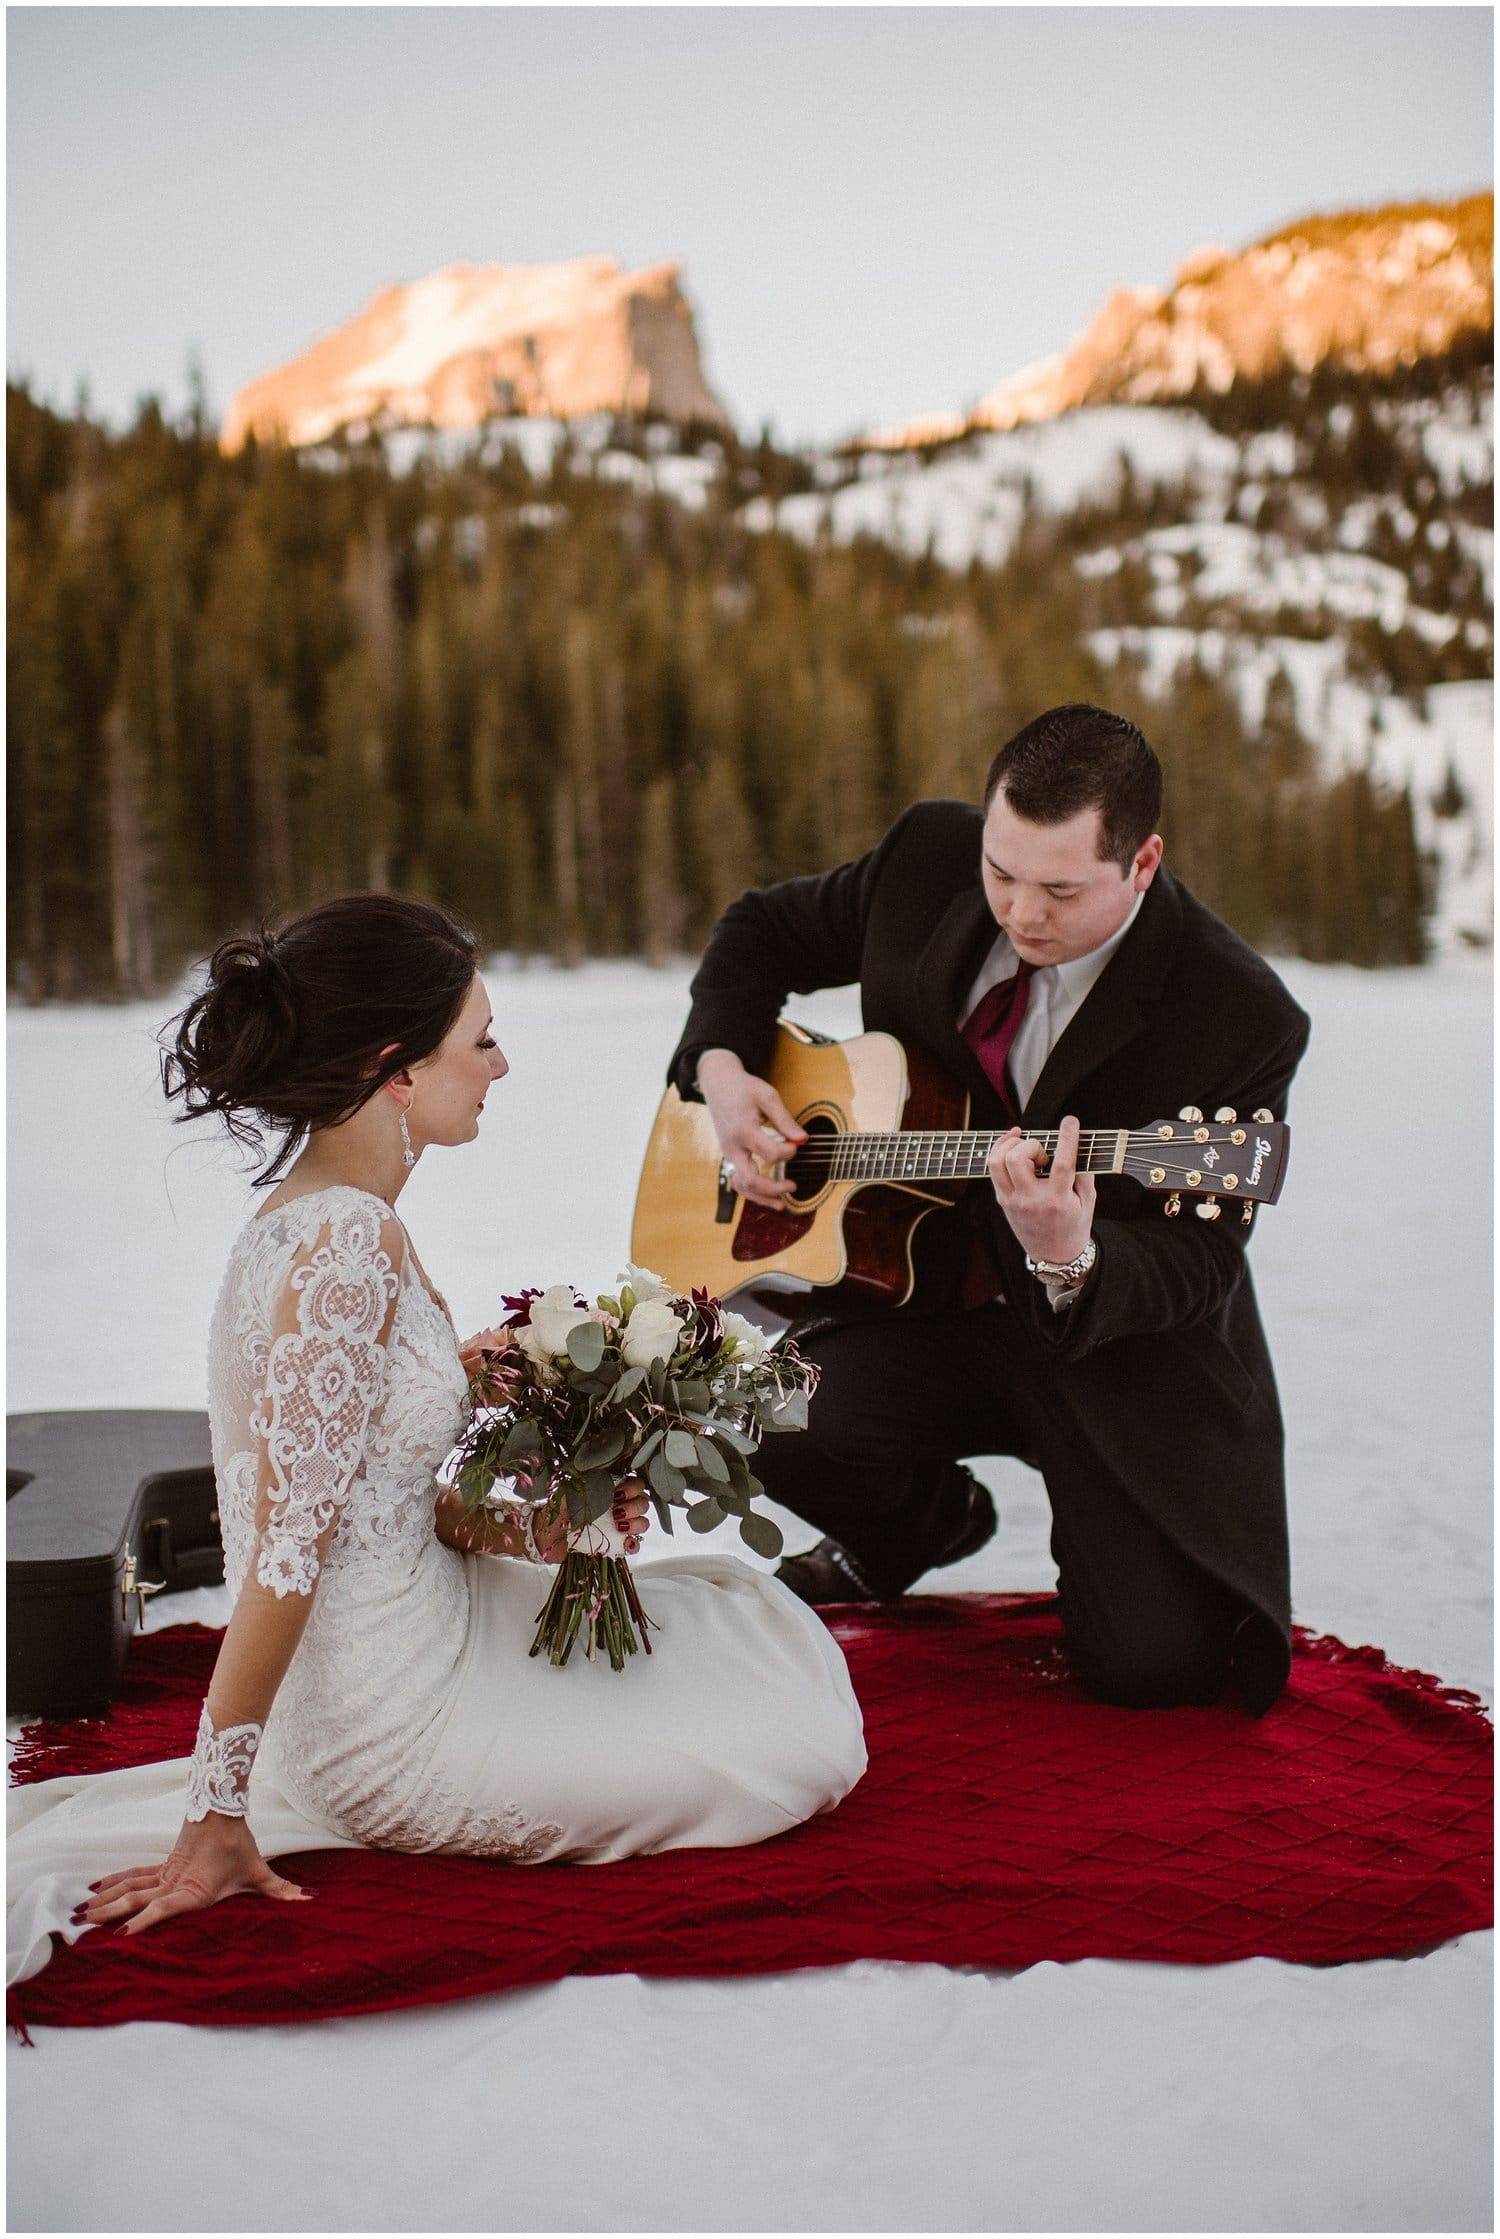 Groom plays guitar for his bride in the snow while on a red blanket.